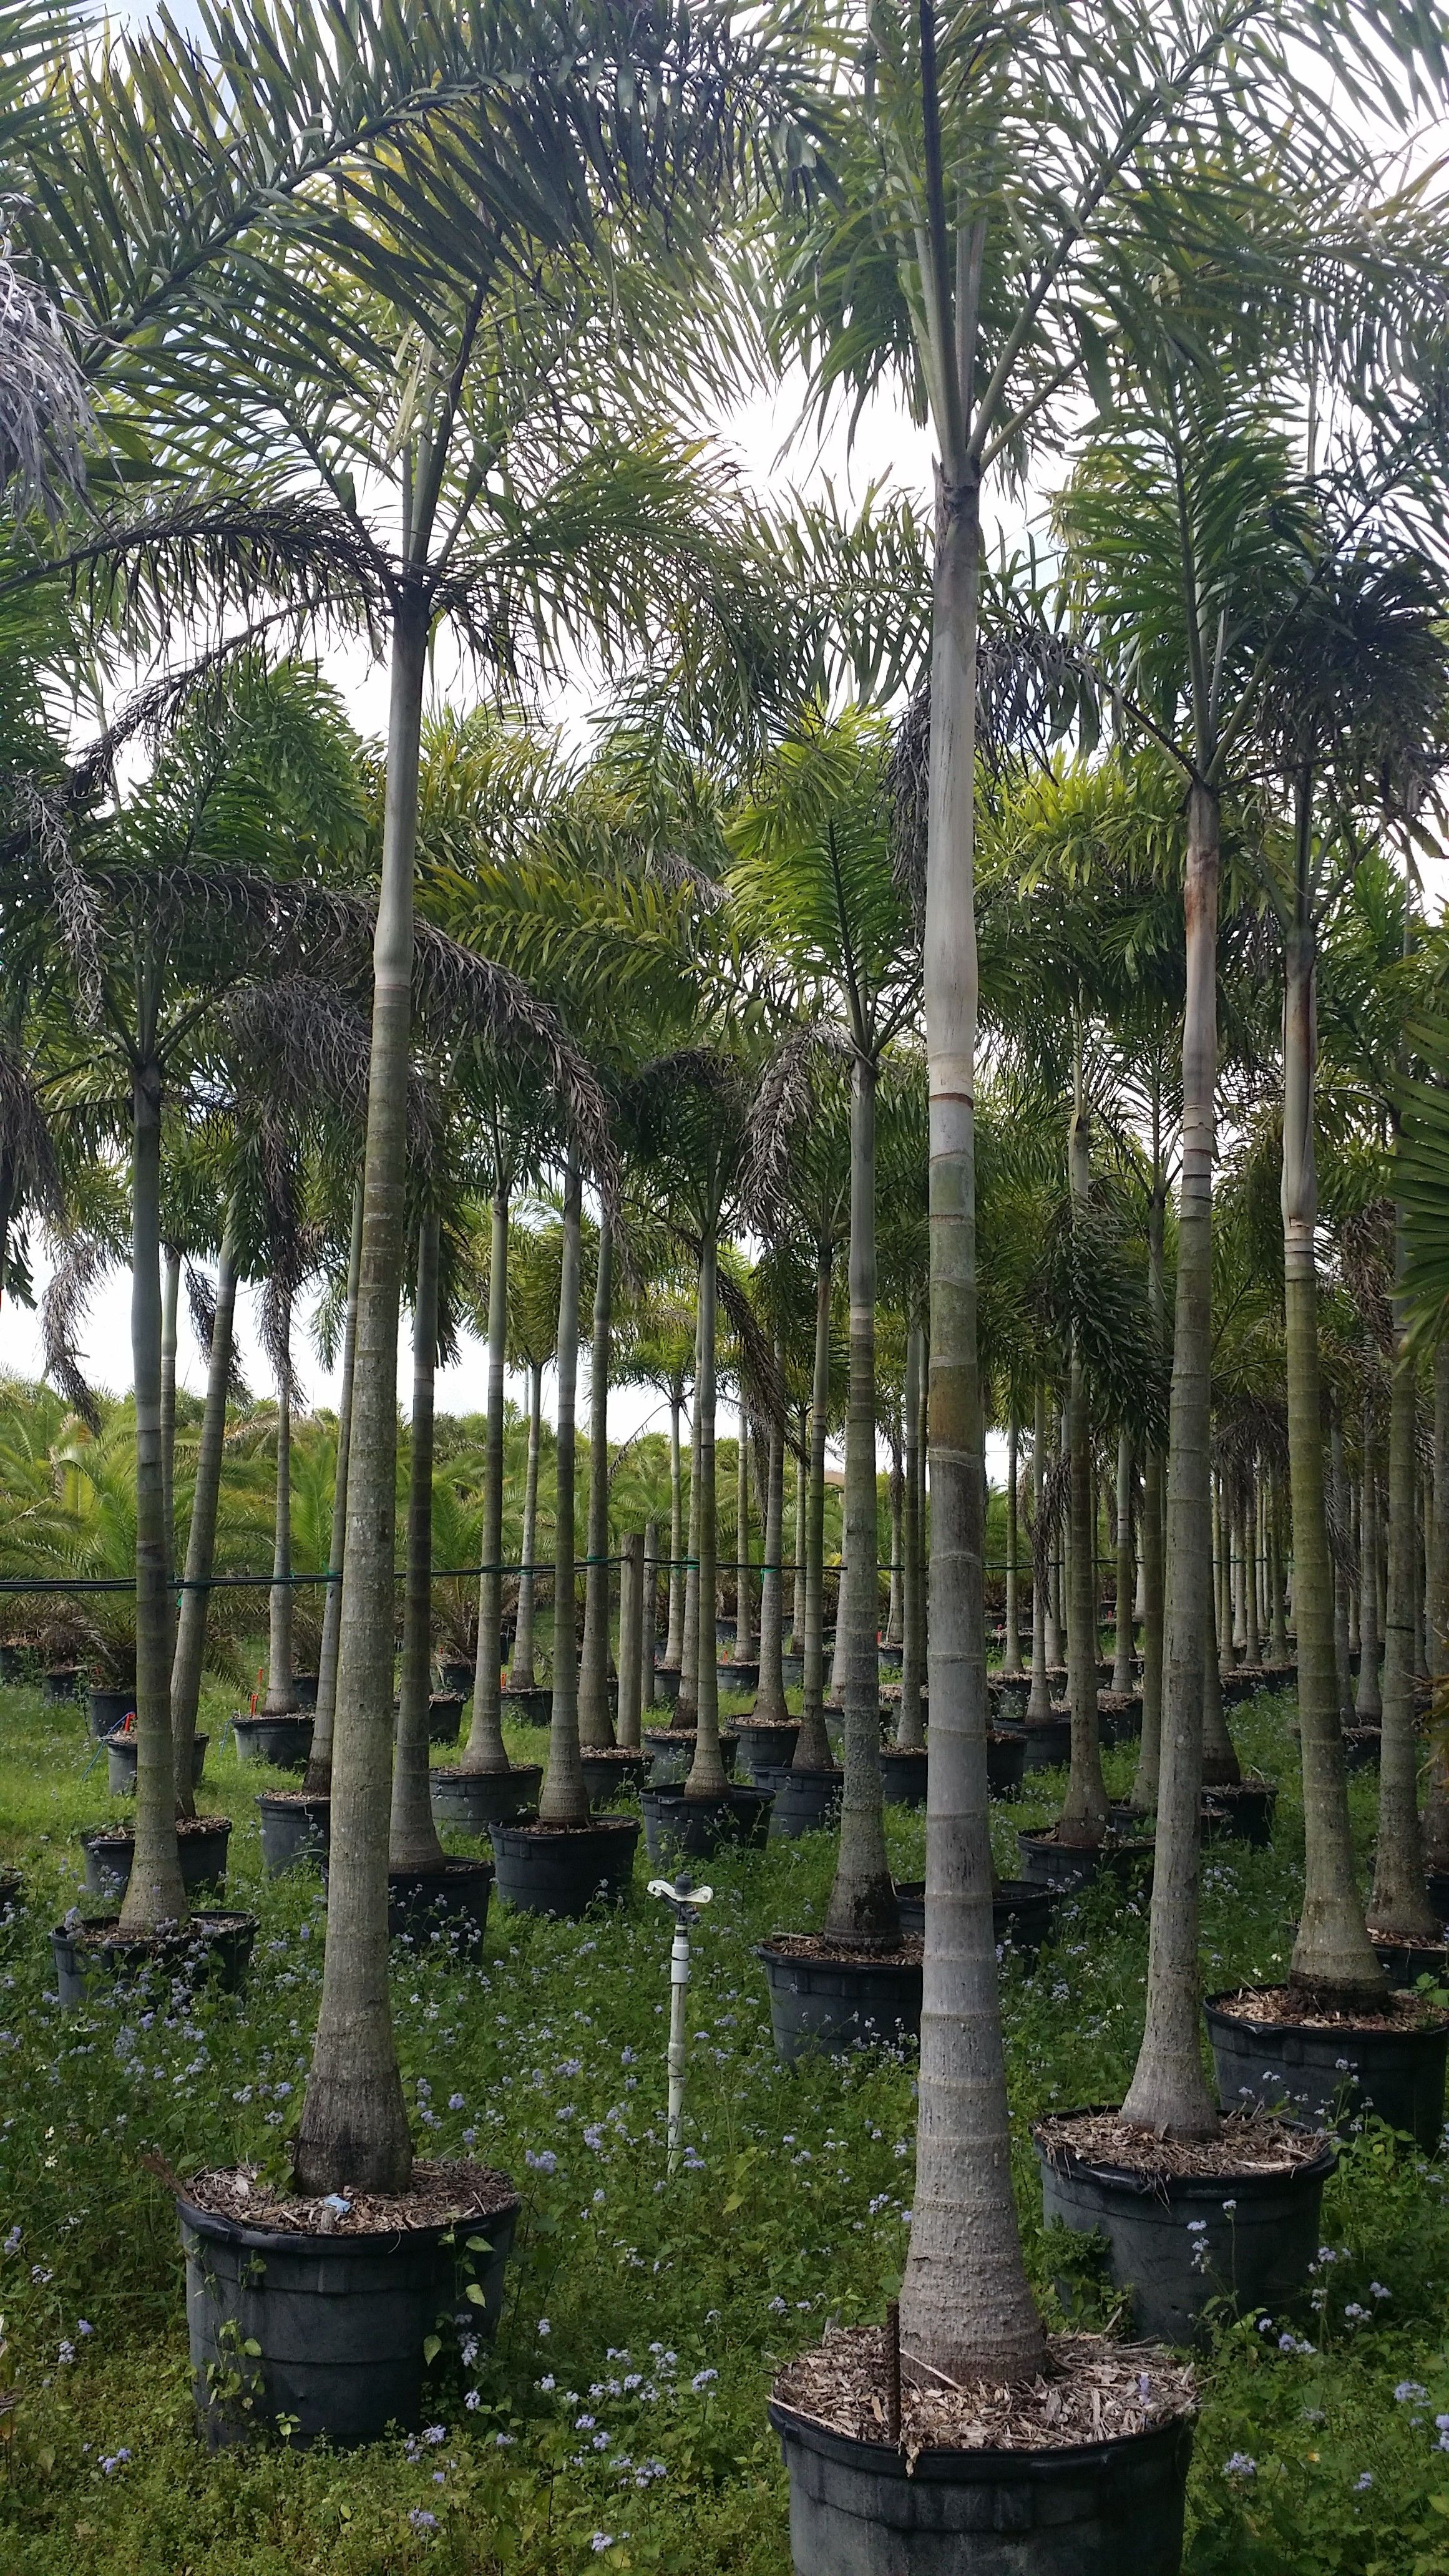 Whole Plant Nursery Florida Foxtail Palm Tree Homestead Single Stem Field Growers